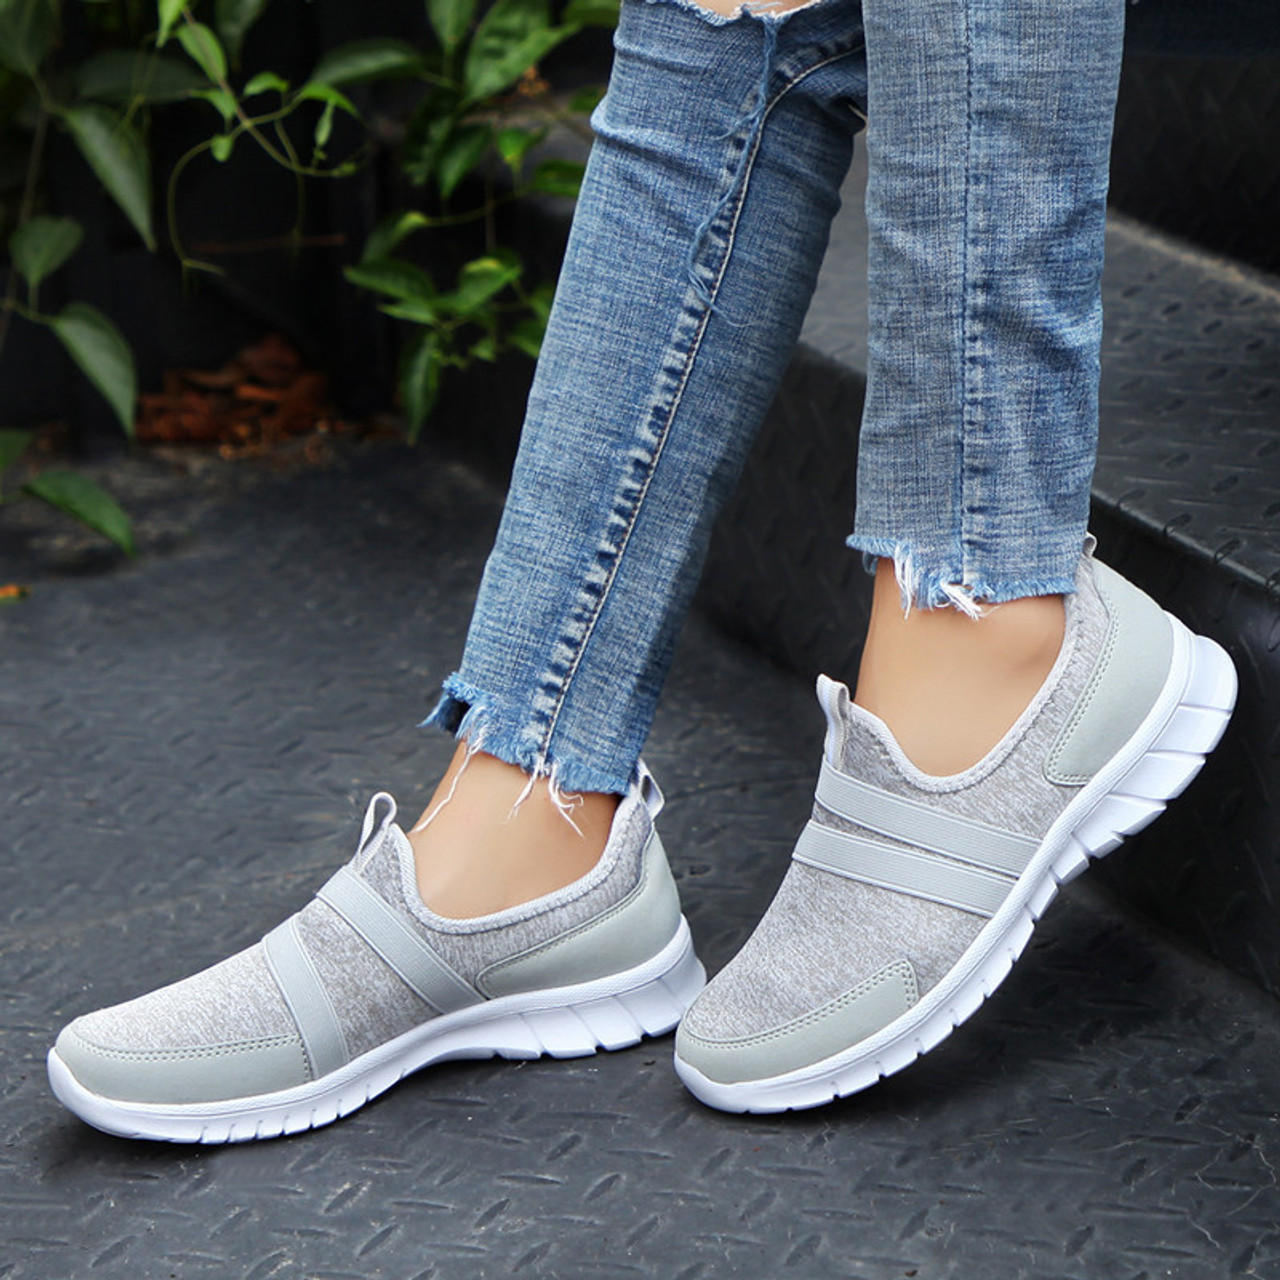 9b30e5902 ... PINSEN 2019 Autumn Sneakers Women Breathable Mesh Shoes Woman Ballet  Slip On Flats Loafers Ladies Shoes ...